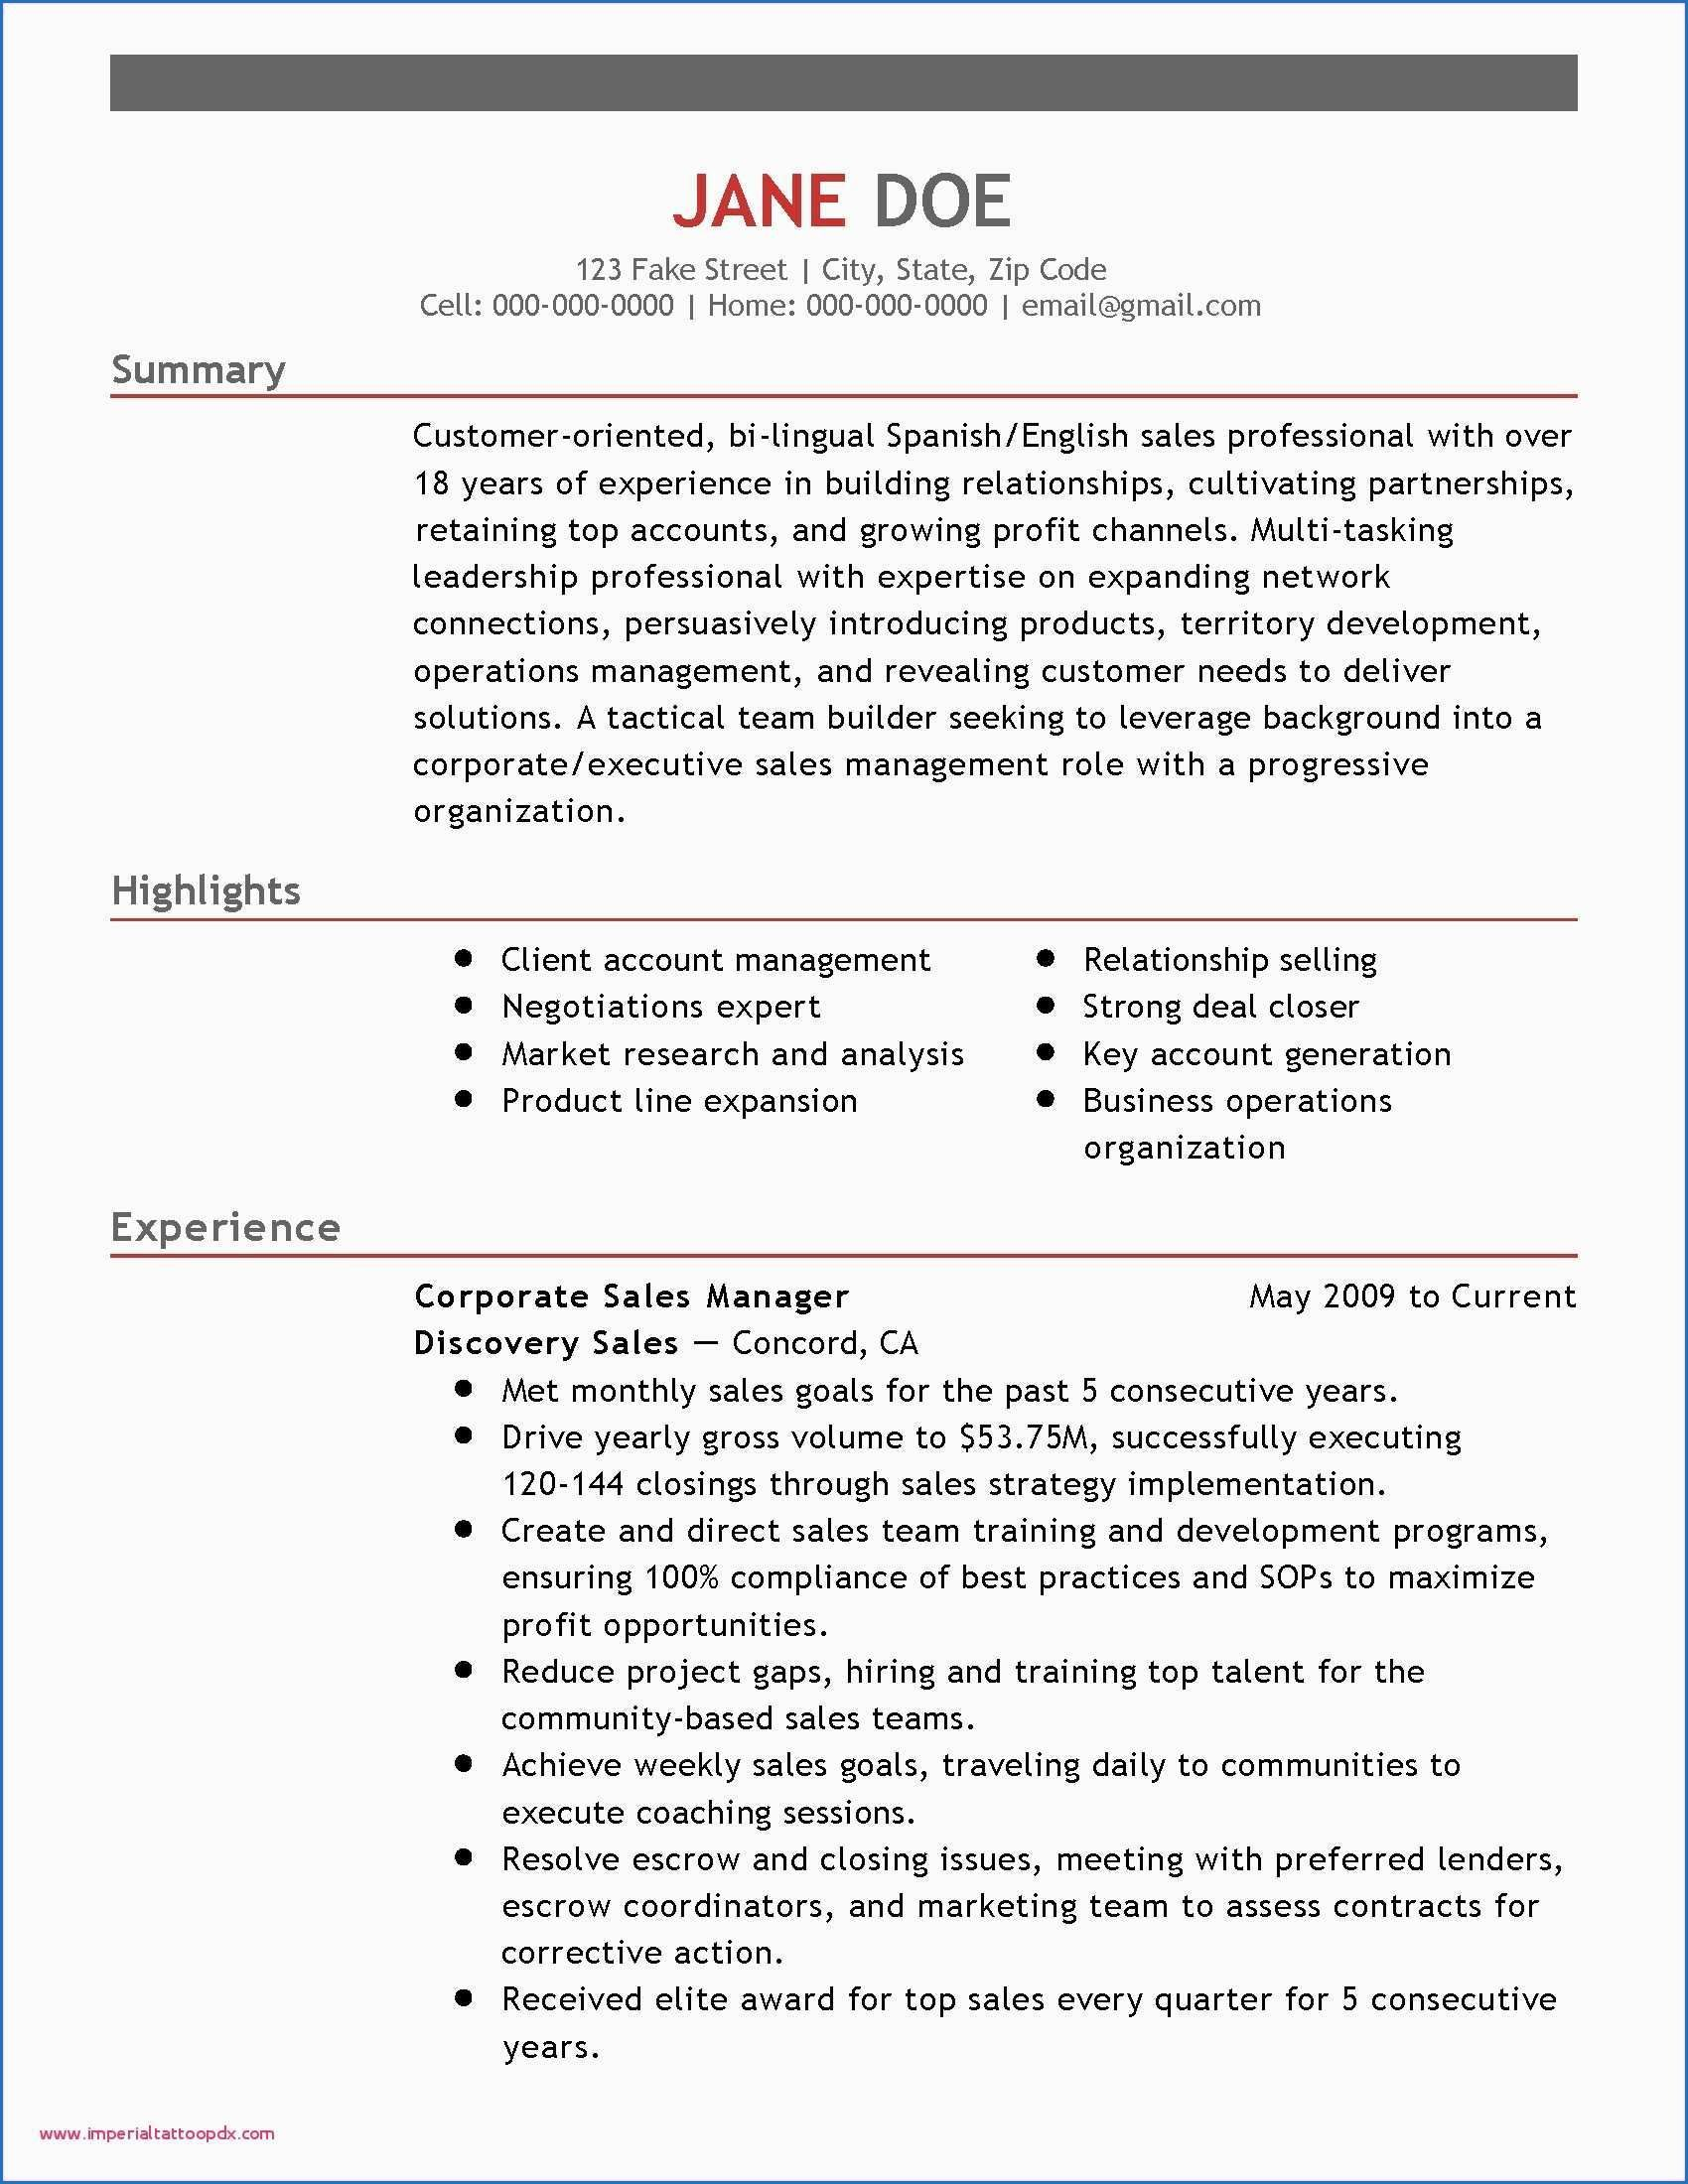 sample resume accounting lecturer template examples teacher collection profile journeyman Resume Collection Profile Resume